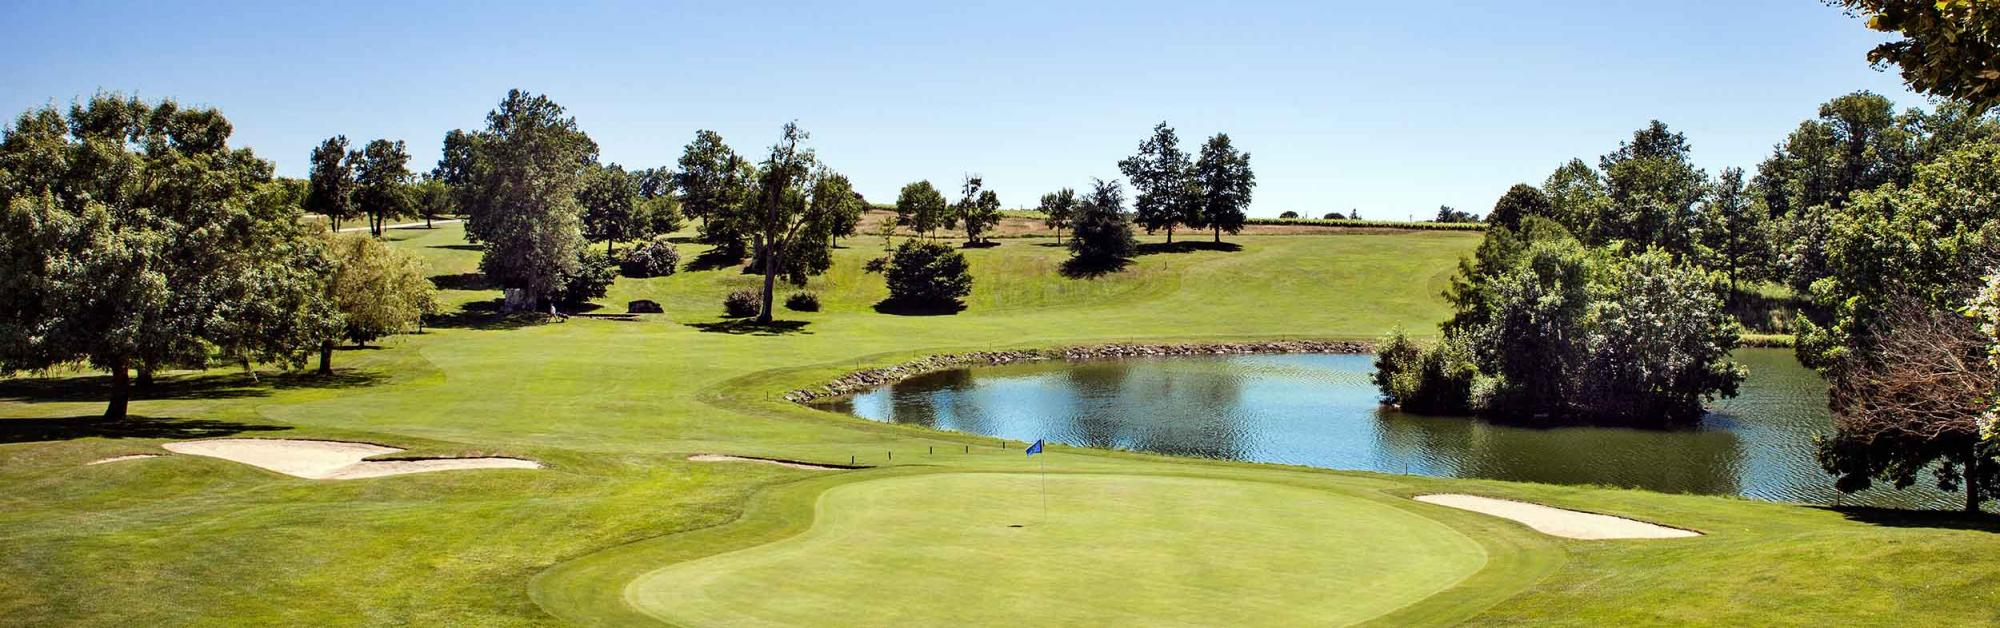 The Golf des Vigiers's picturesque golf course situated in sensational South-West France.